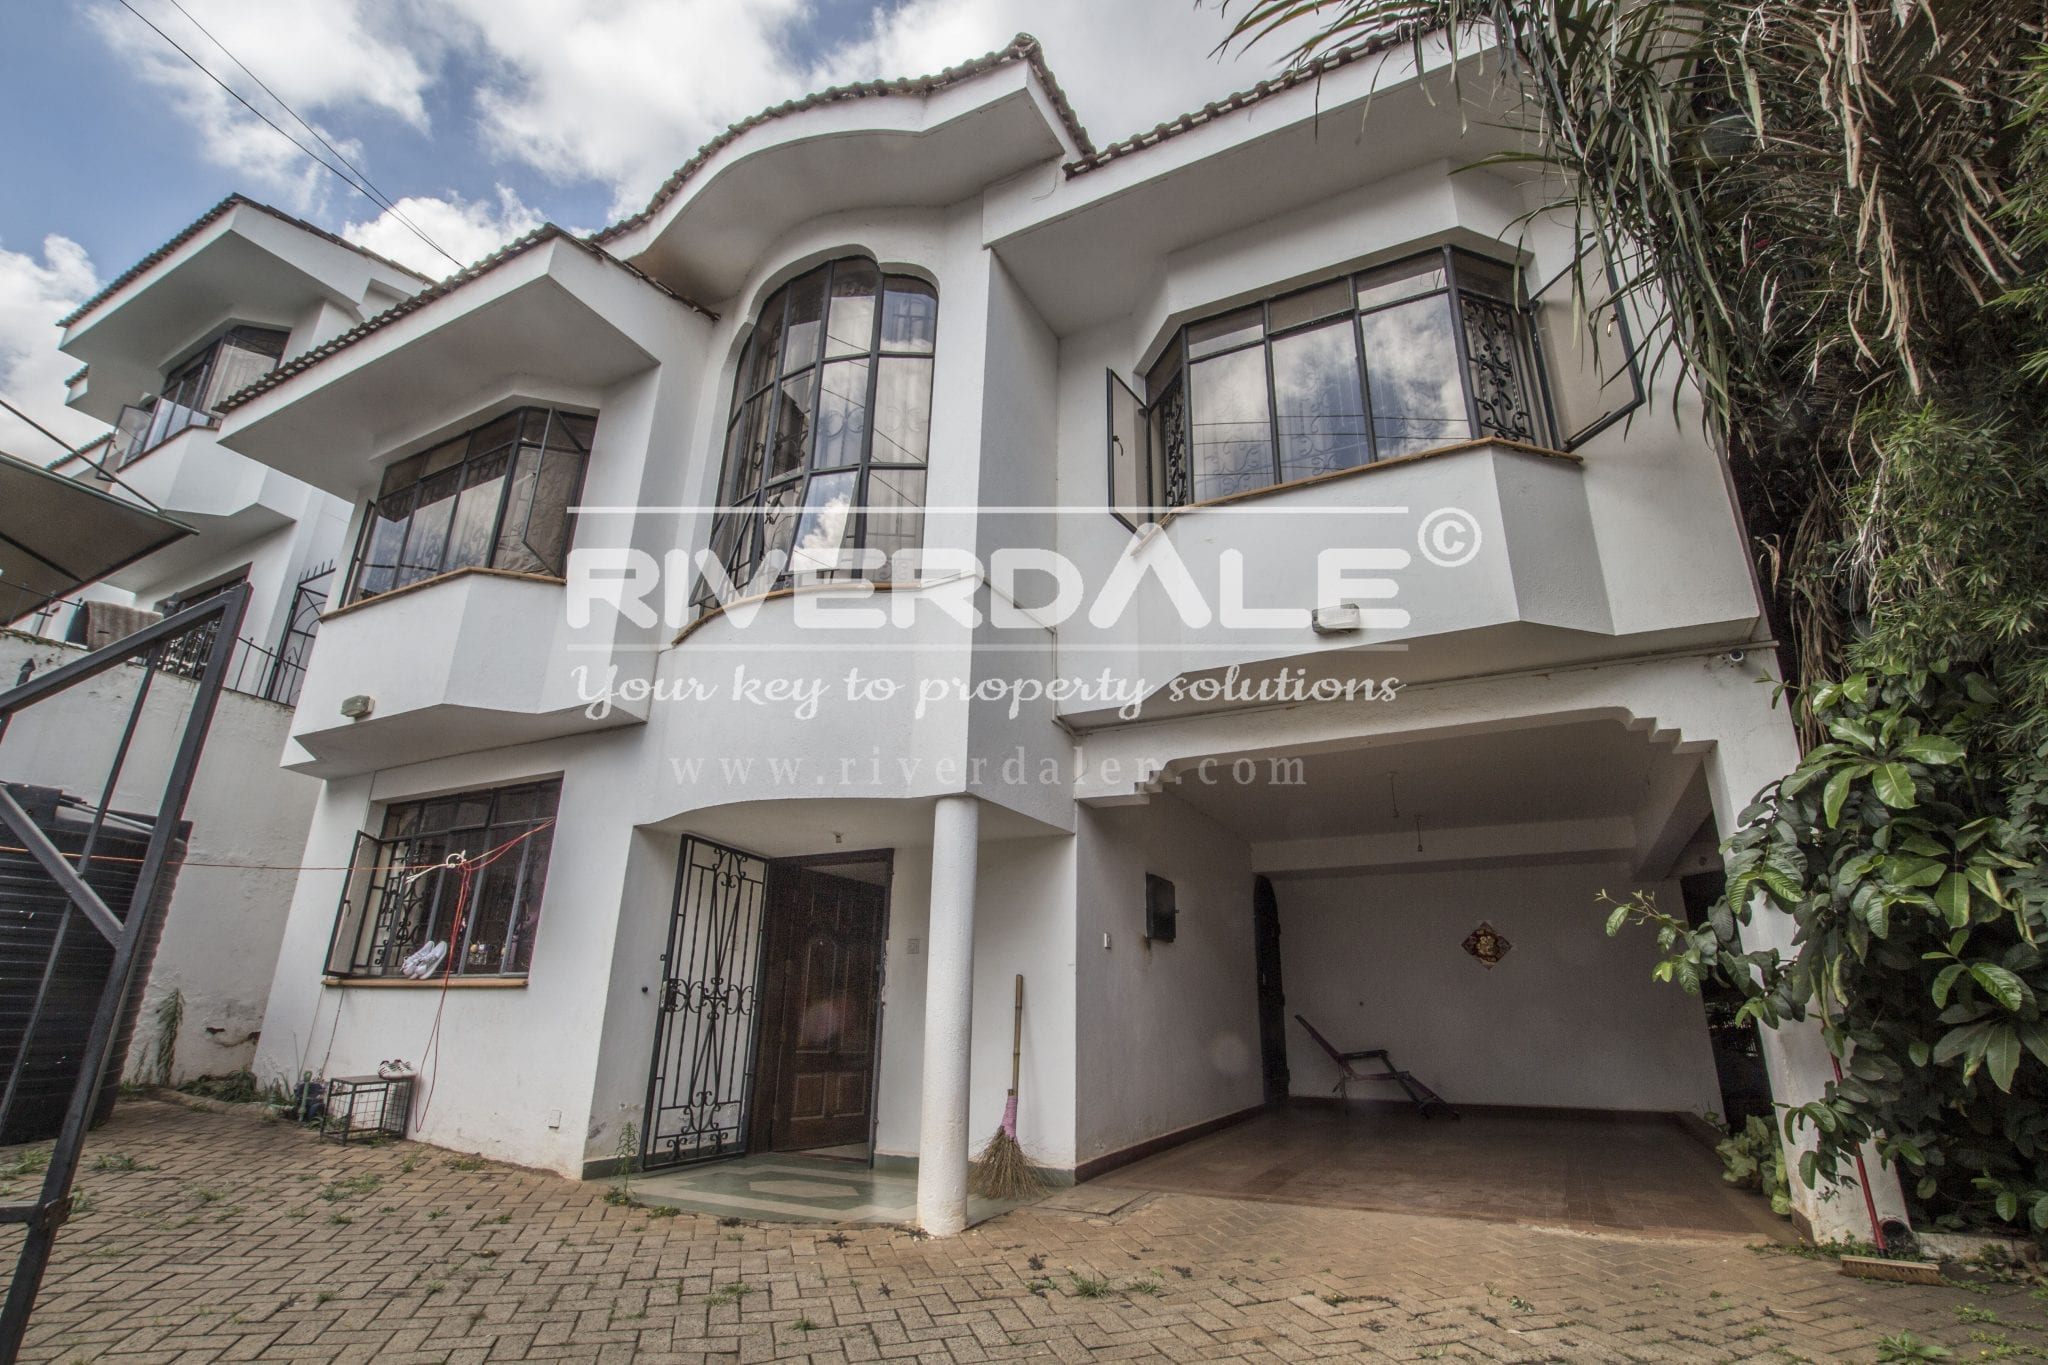 Luxurious 5 Bedroom Villa To Let At Riverside Drive